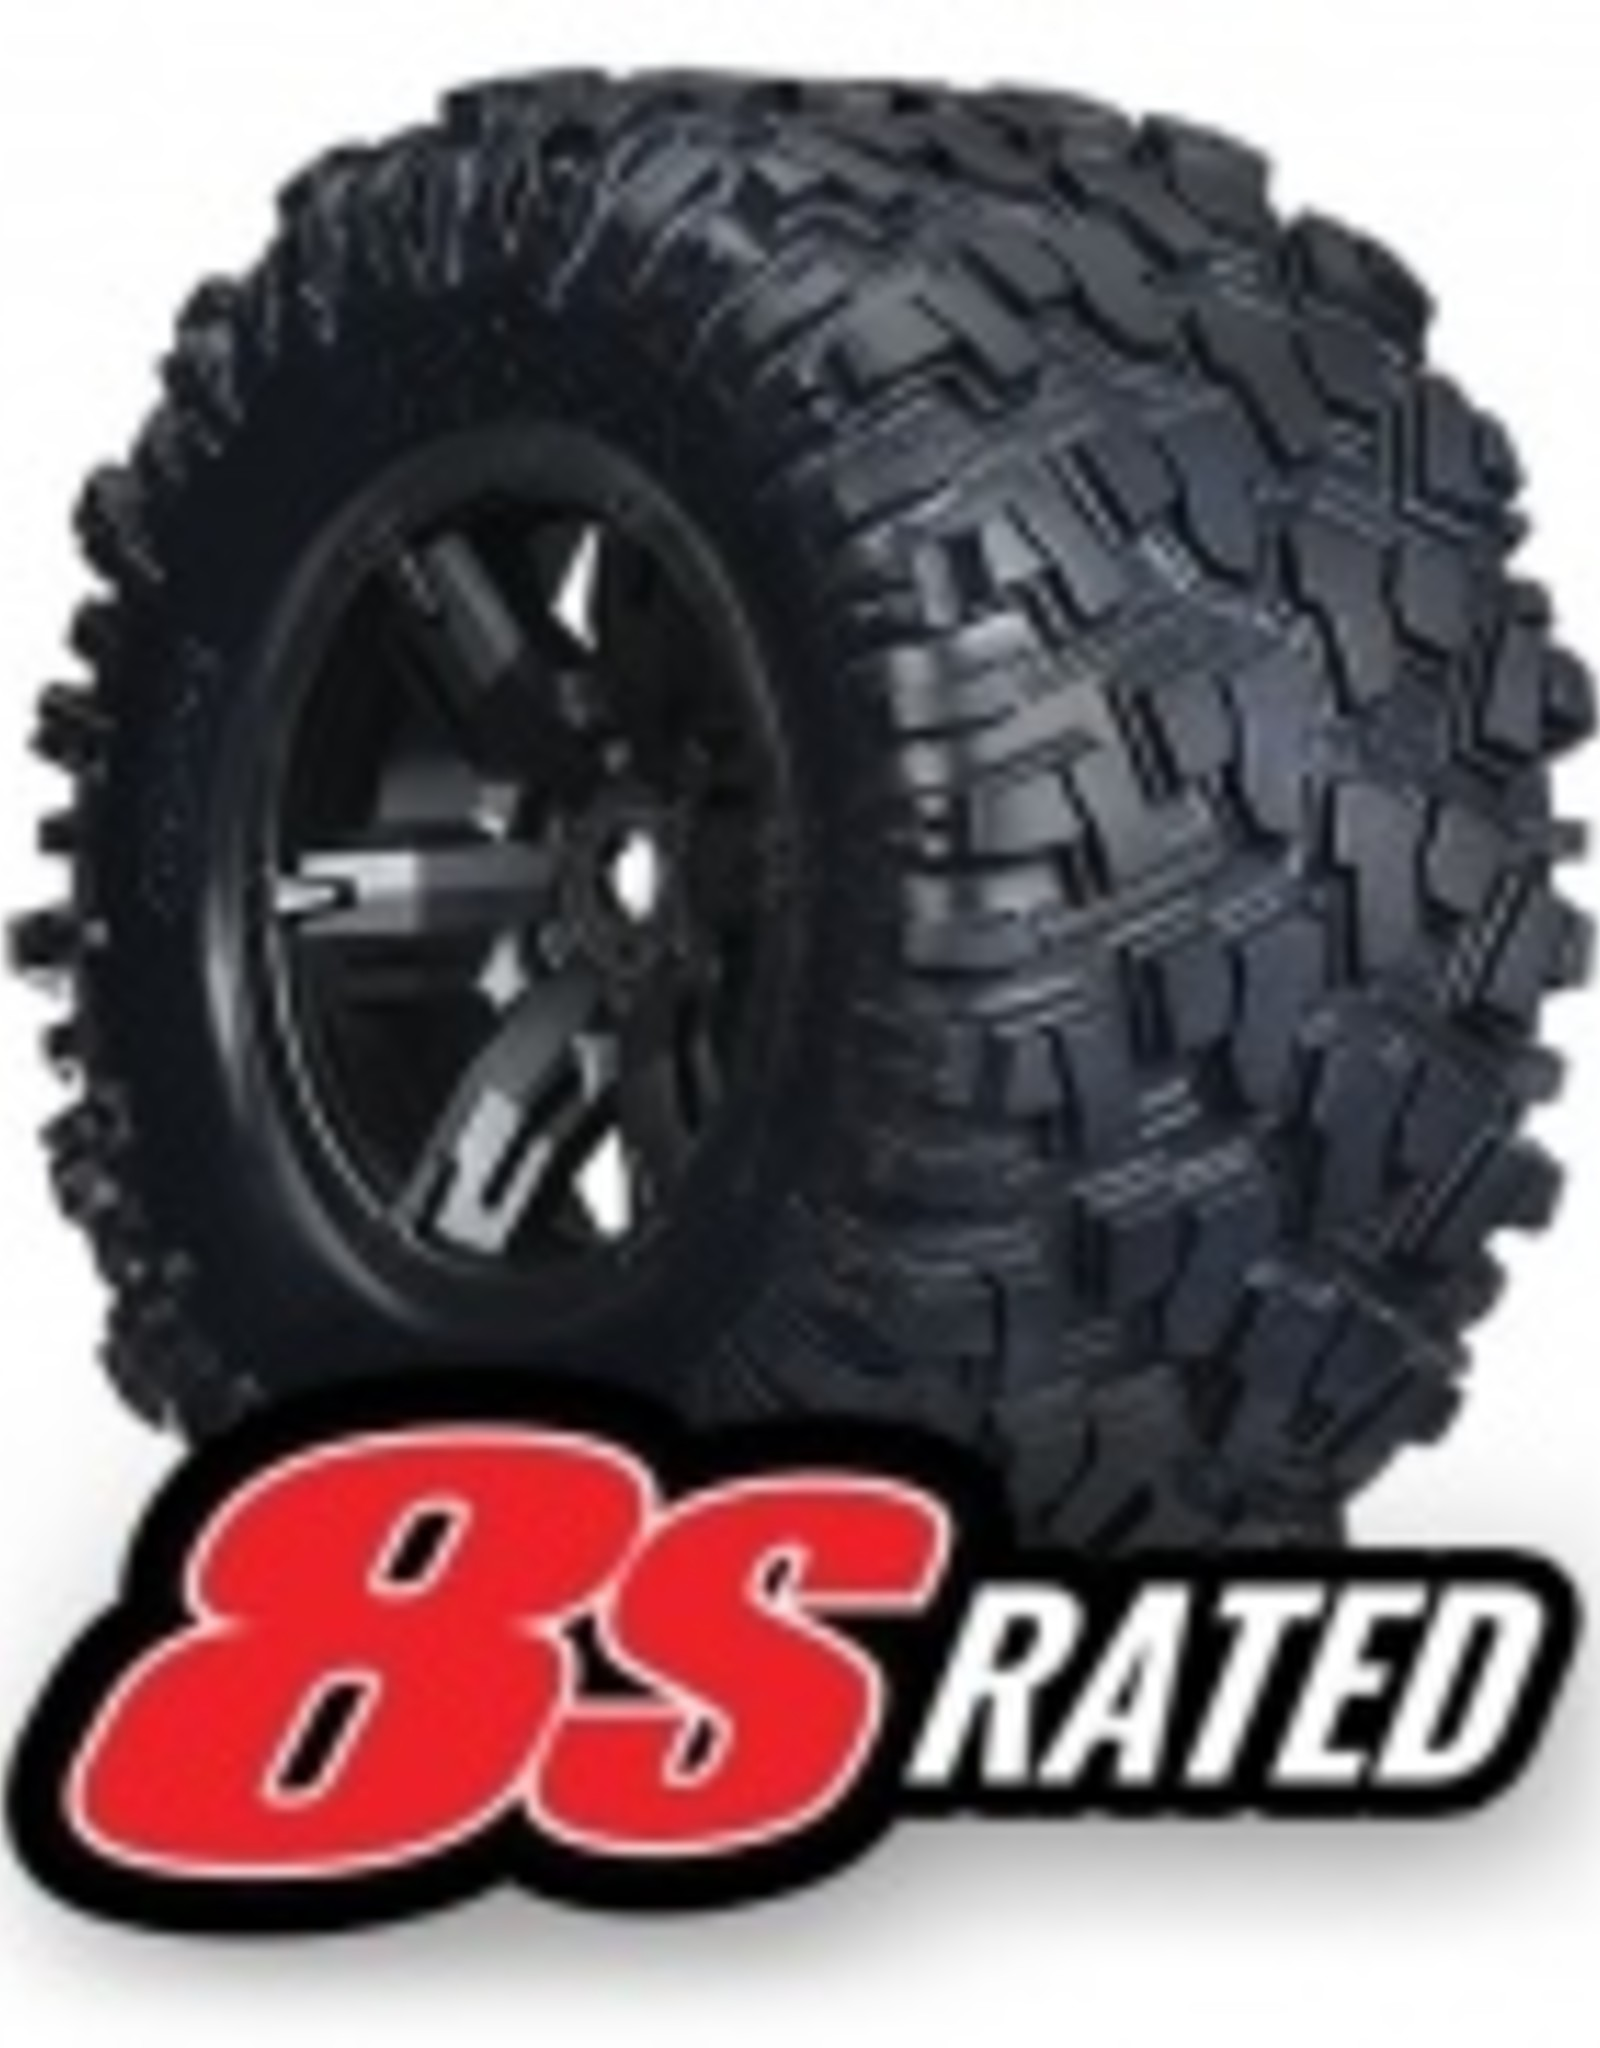 Traxxas Traxxas X-Maxx Tires & wheels, assembled, glued (X-Maxx® black wheels, Maxx® AT tires, foam inserts) (left & right) (2)